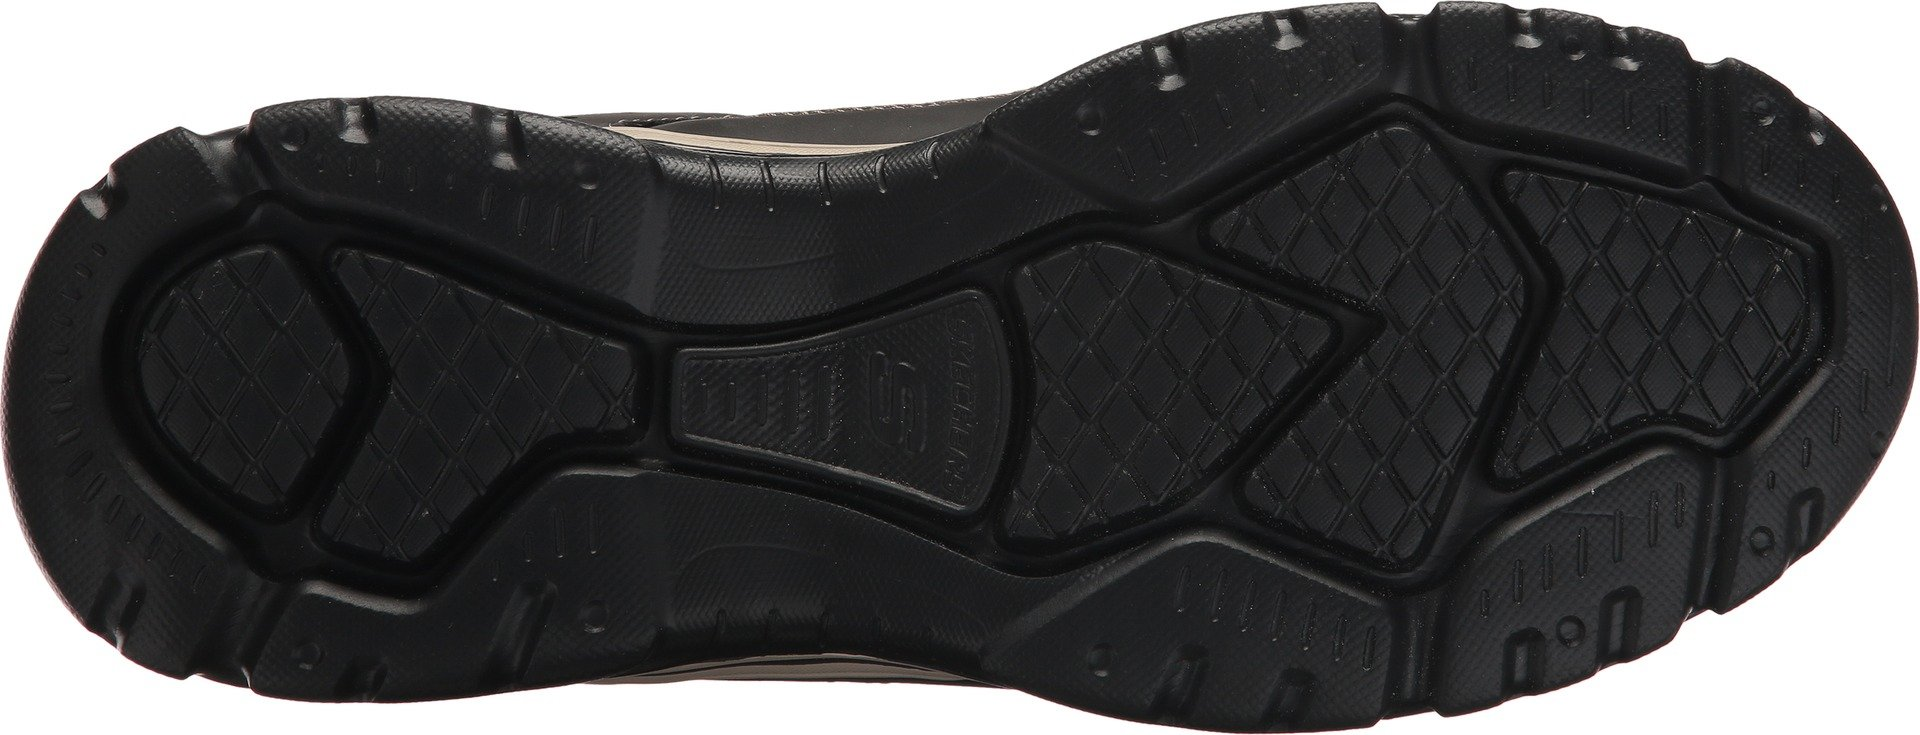 369459c8ebaf3 Skechers USA Men's Men's Relaxed Fit-Rovato-Texon Oxford,10 M US,black -  65418-195-10 M US < Oxfords < Clothing, Shoes & Jewelry - tibs